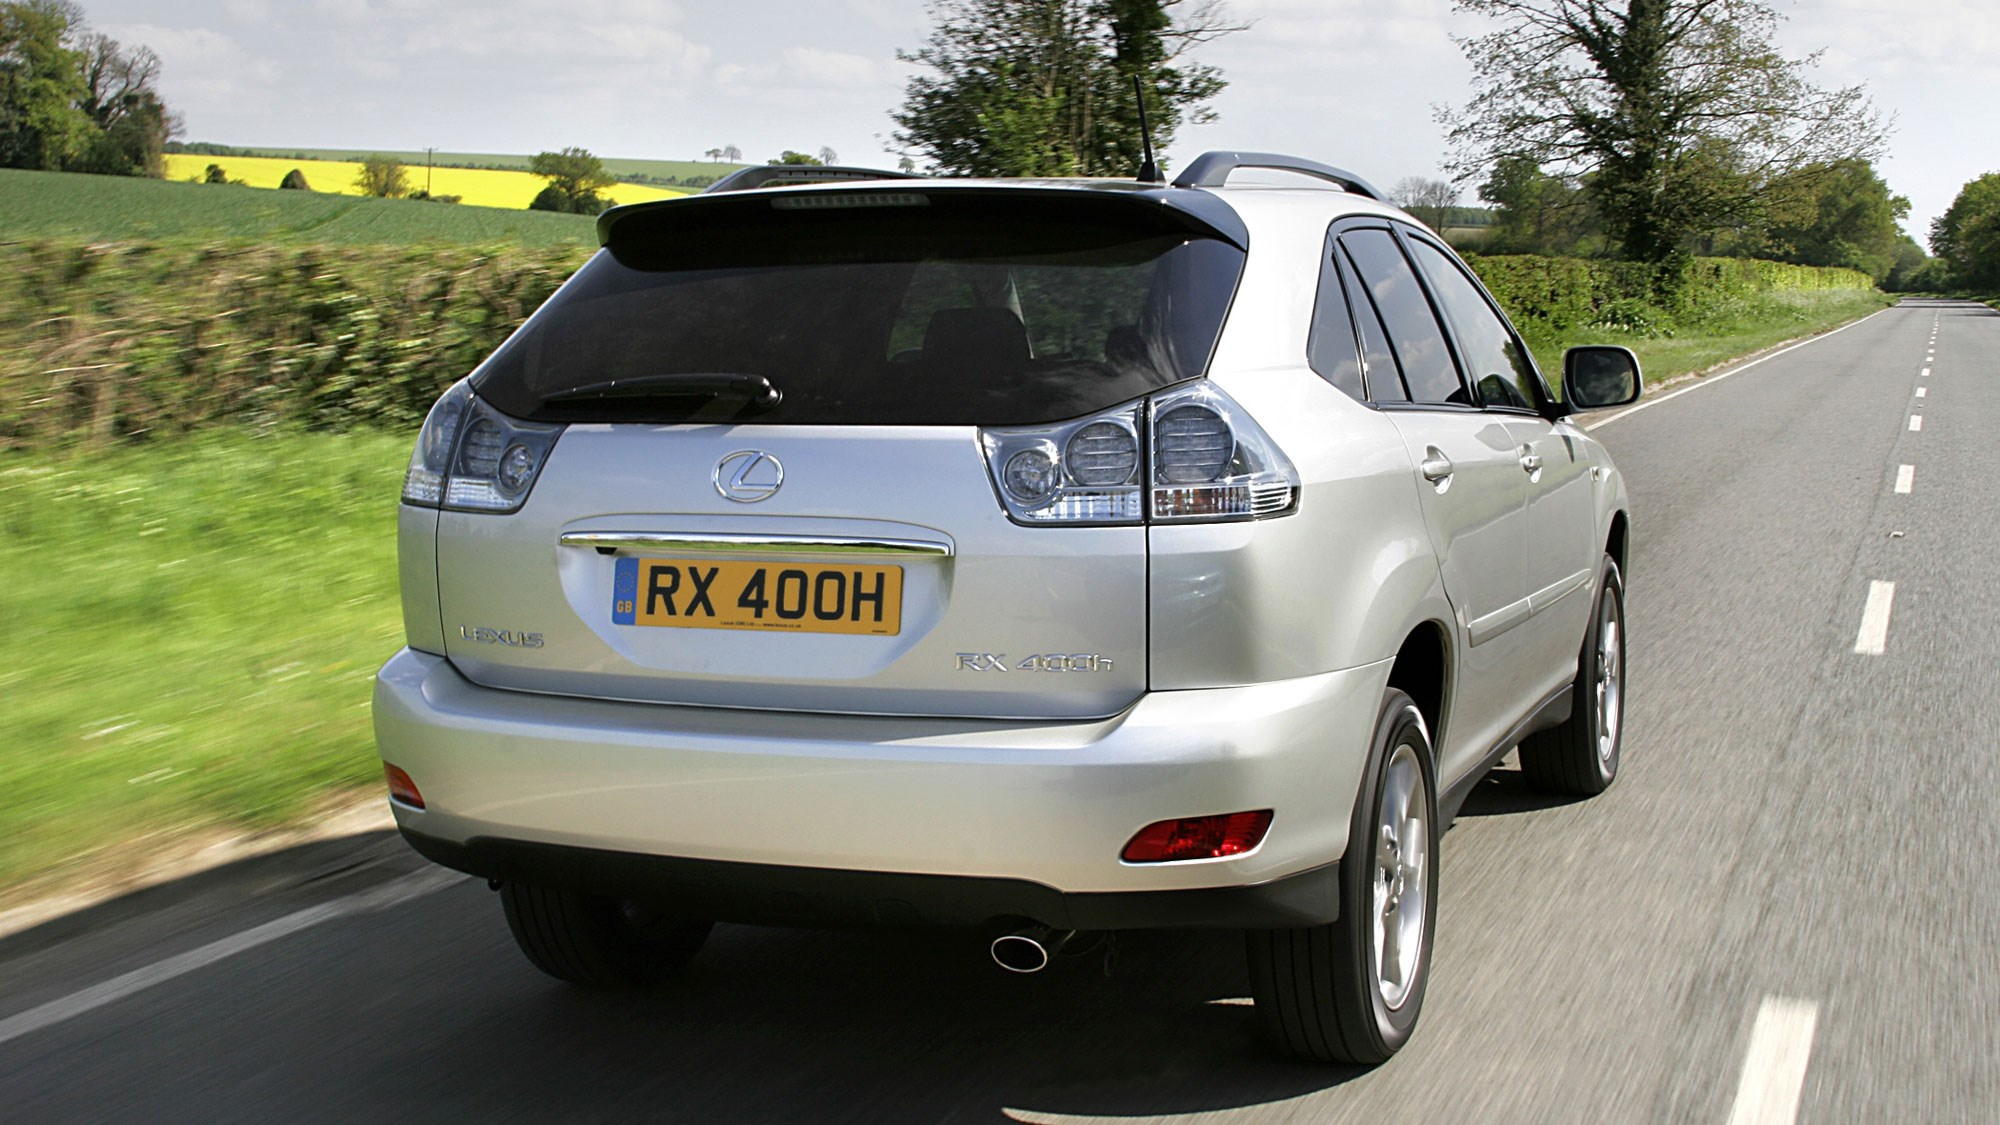 Lexus RX400h hybrid SUV review - rear view, silver, driving